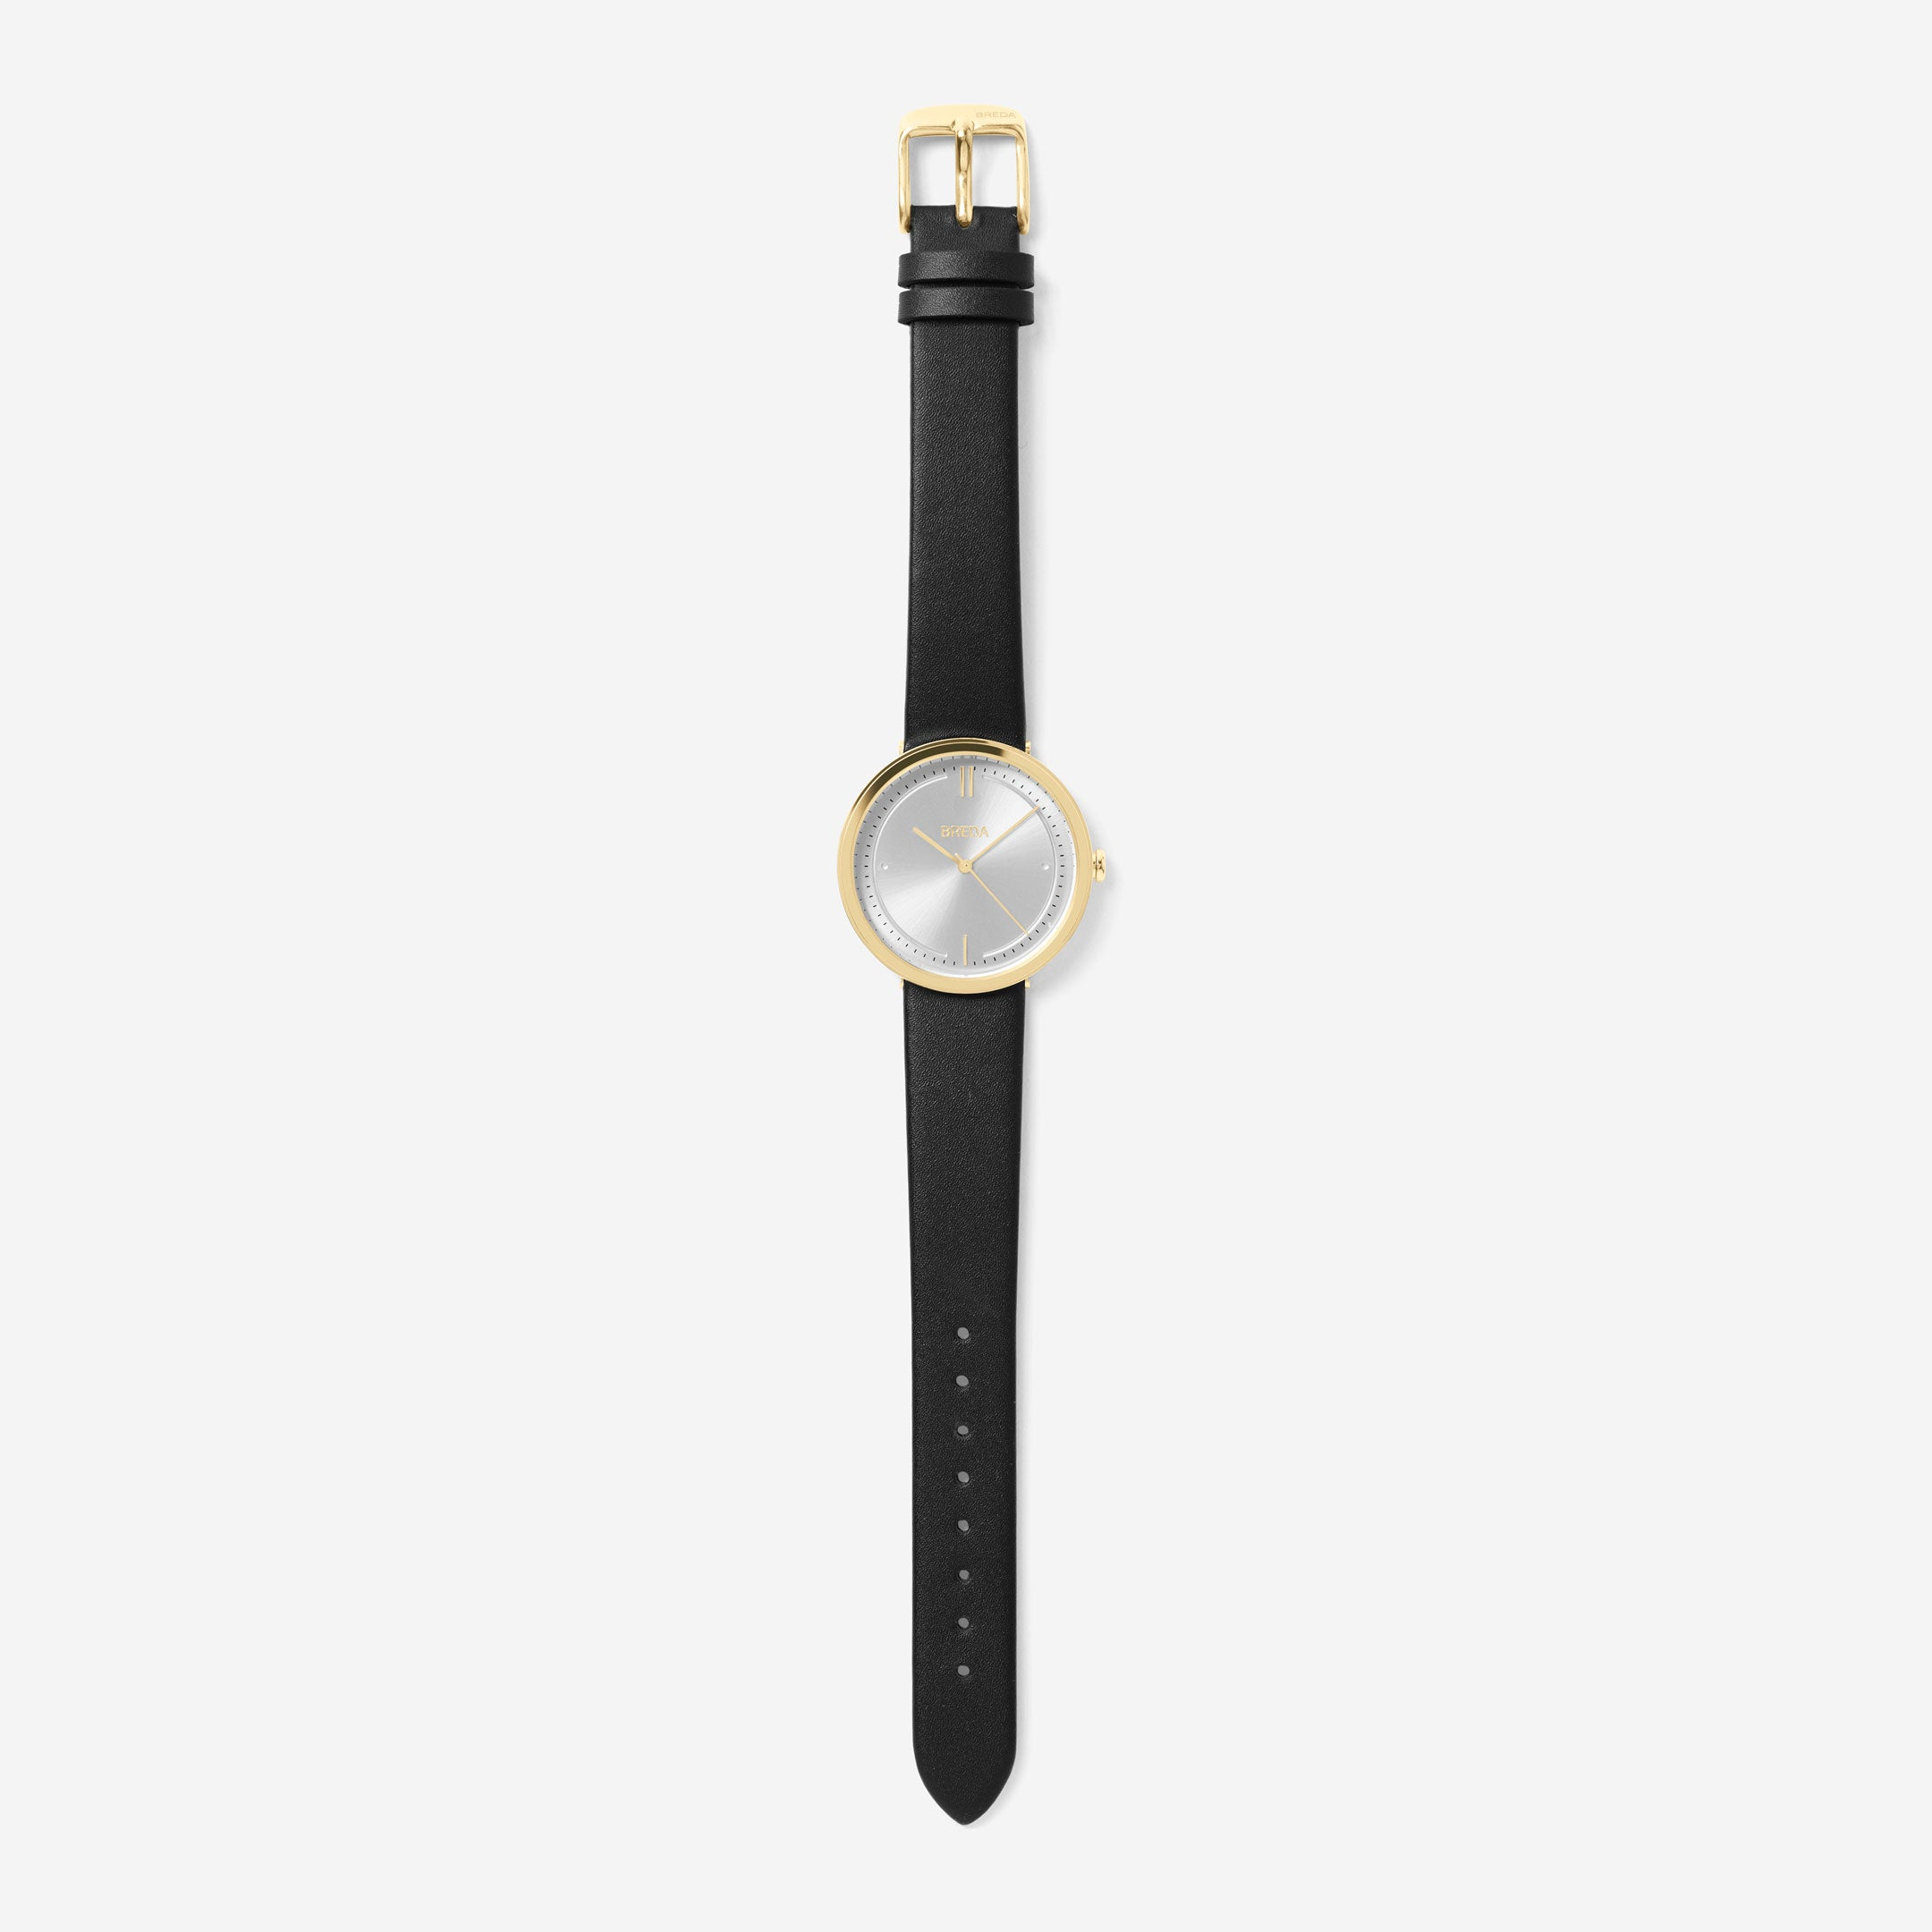 //cdn.shopify.com/s/files/1/0879/6650/products/breda-agnes-1733a-gold-black-leather-watch-long_1024x1024.jpg?v=1522788908